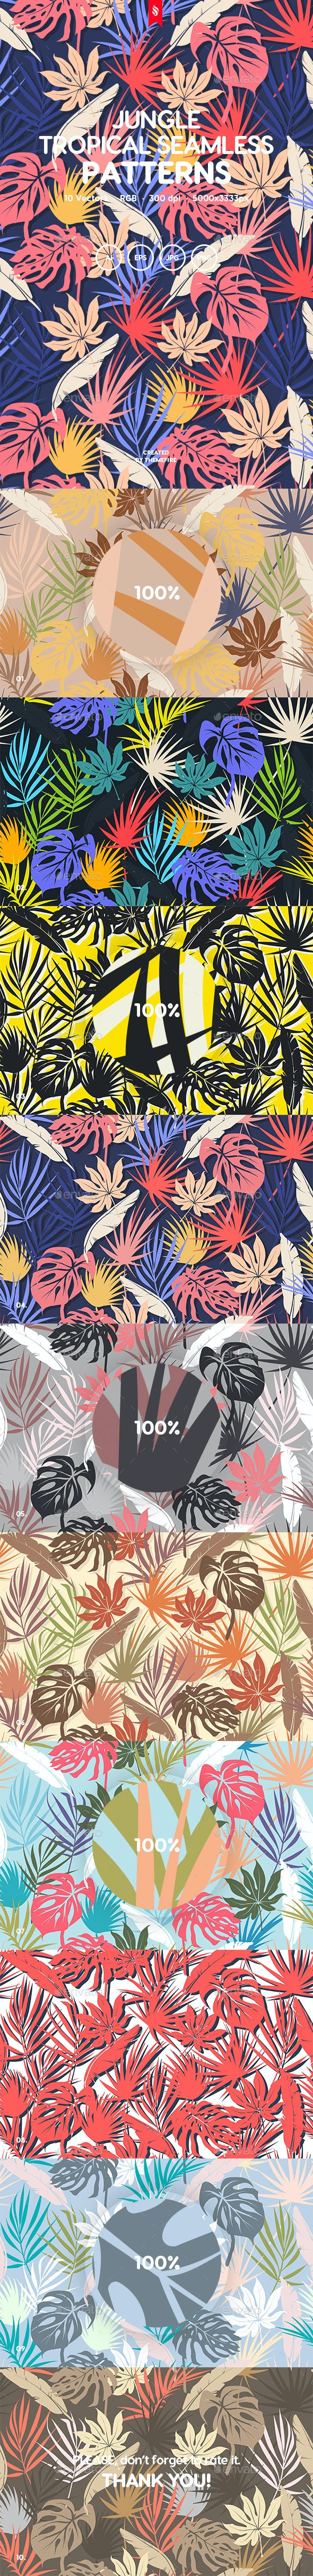 Jungle - Colorful Tropical Foliar Seamless Patterns - Patterns Backgrounds